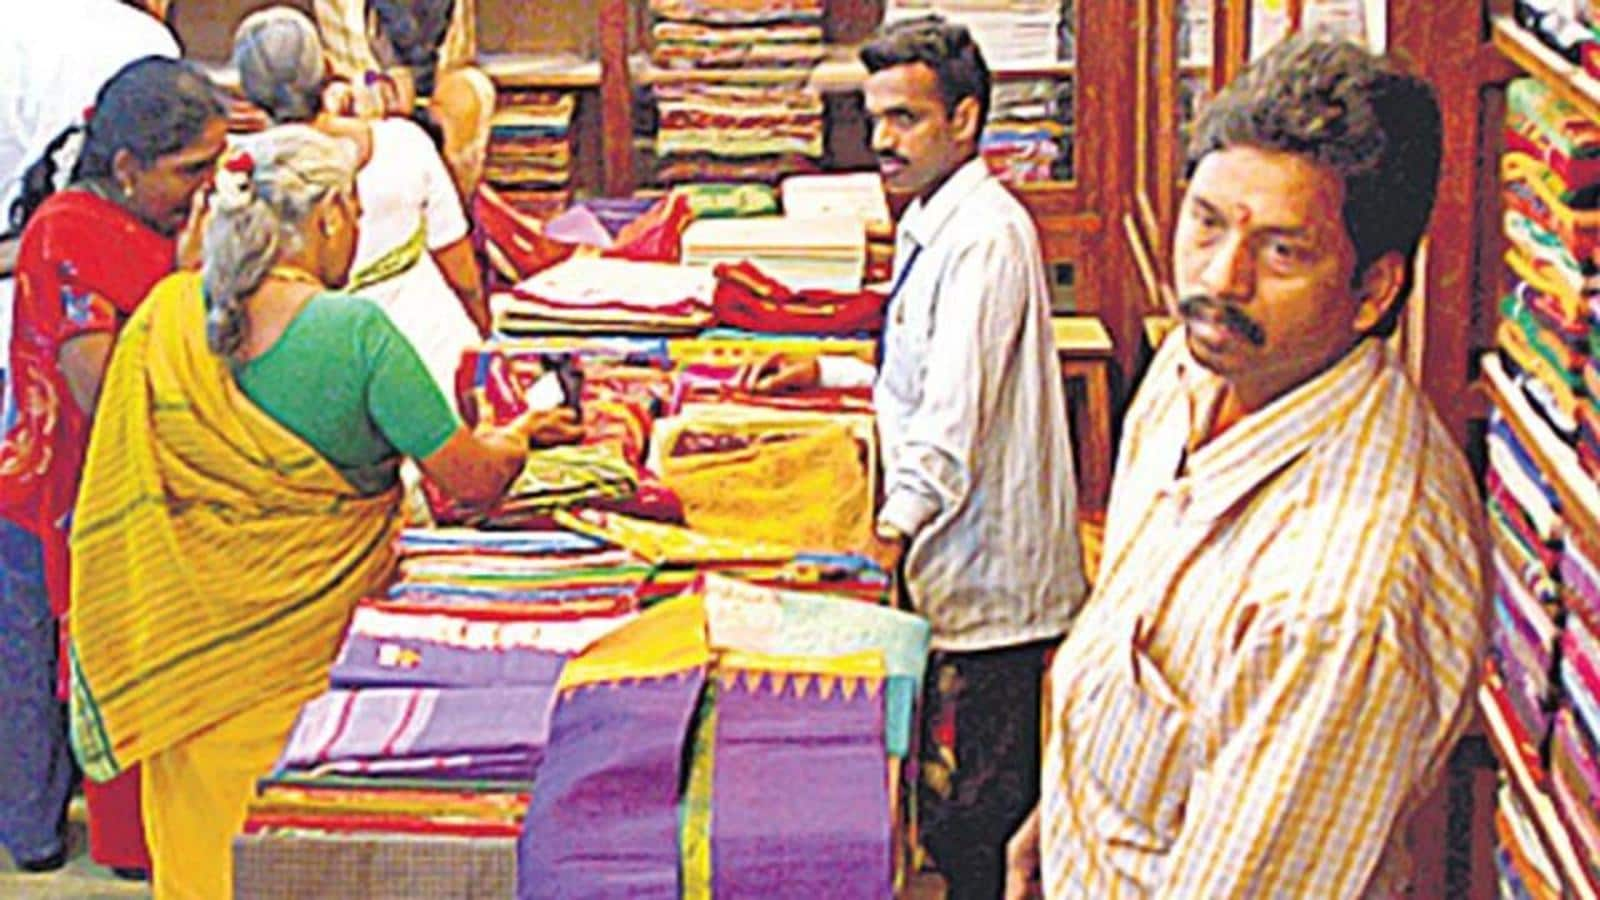 TN tables bill making it must for shop owners to provide seating for staff | Latest News India - Hindustan Times